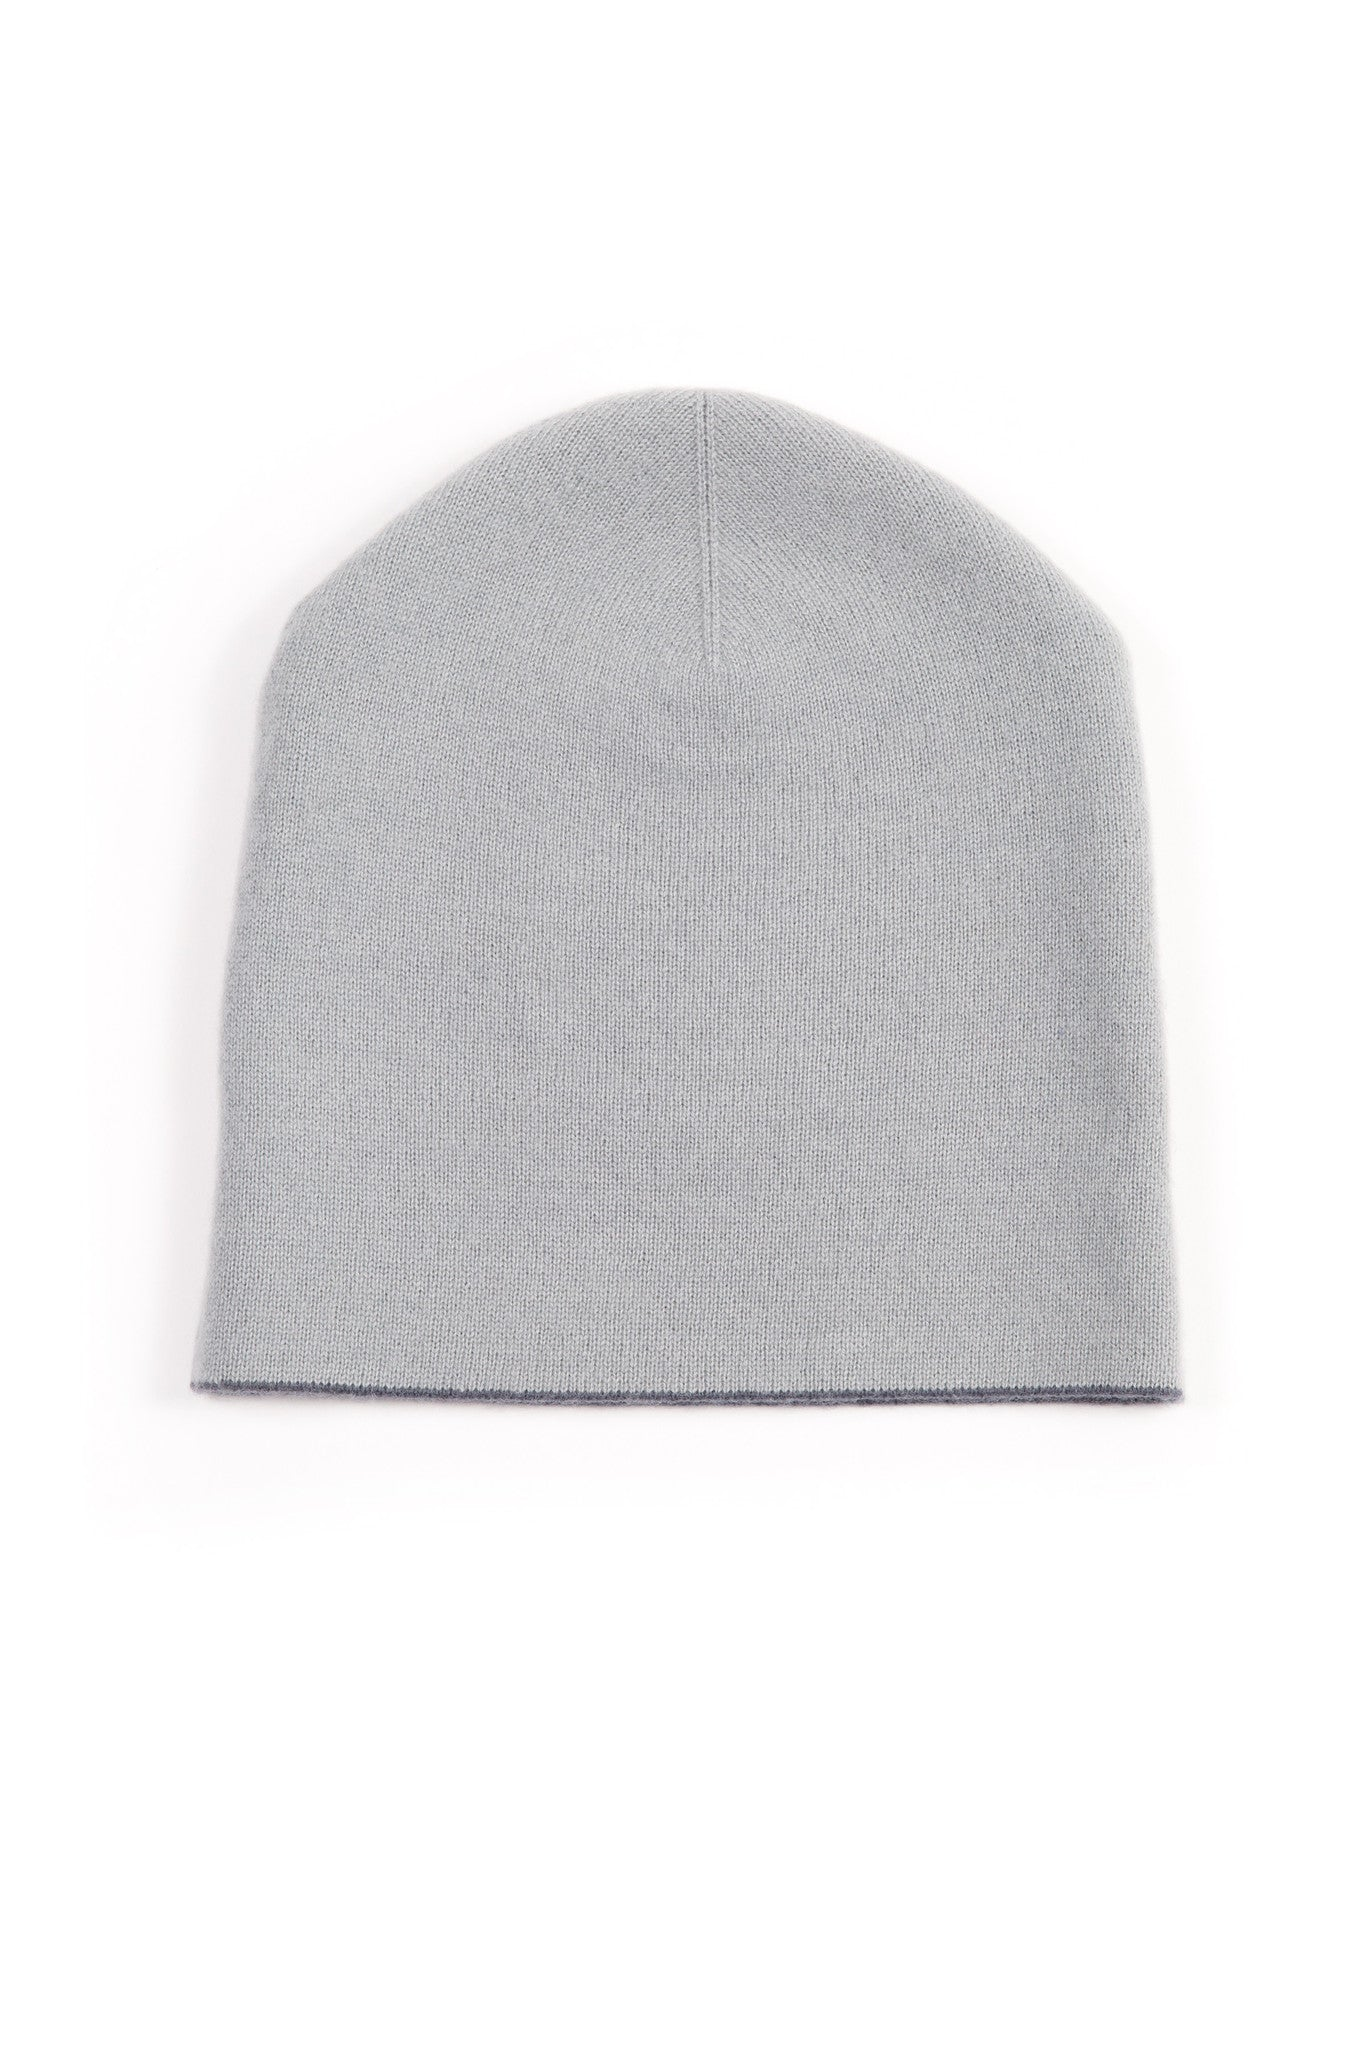 26c6b28f9469f Light Grey and Charcoal Grey 50% Cashmere 50% Wool Reversible Hat - Corala  Cashmere ...